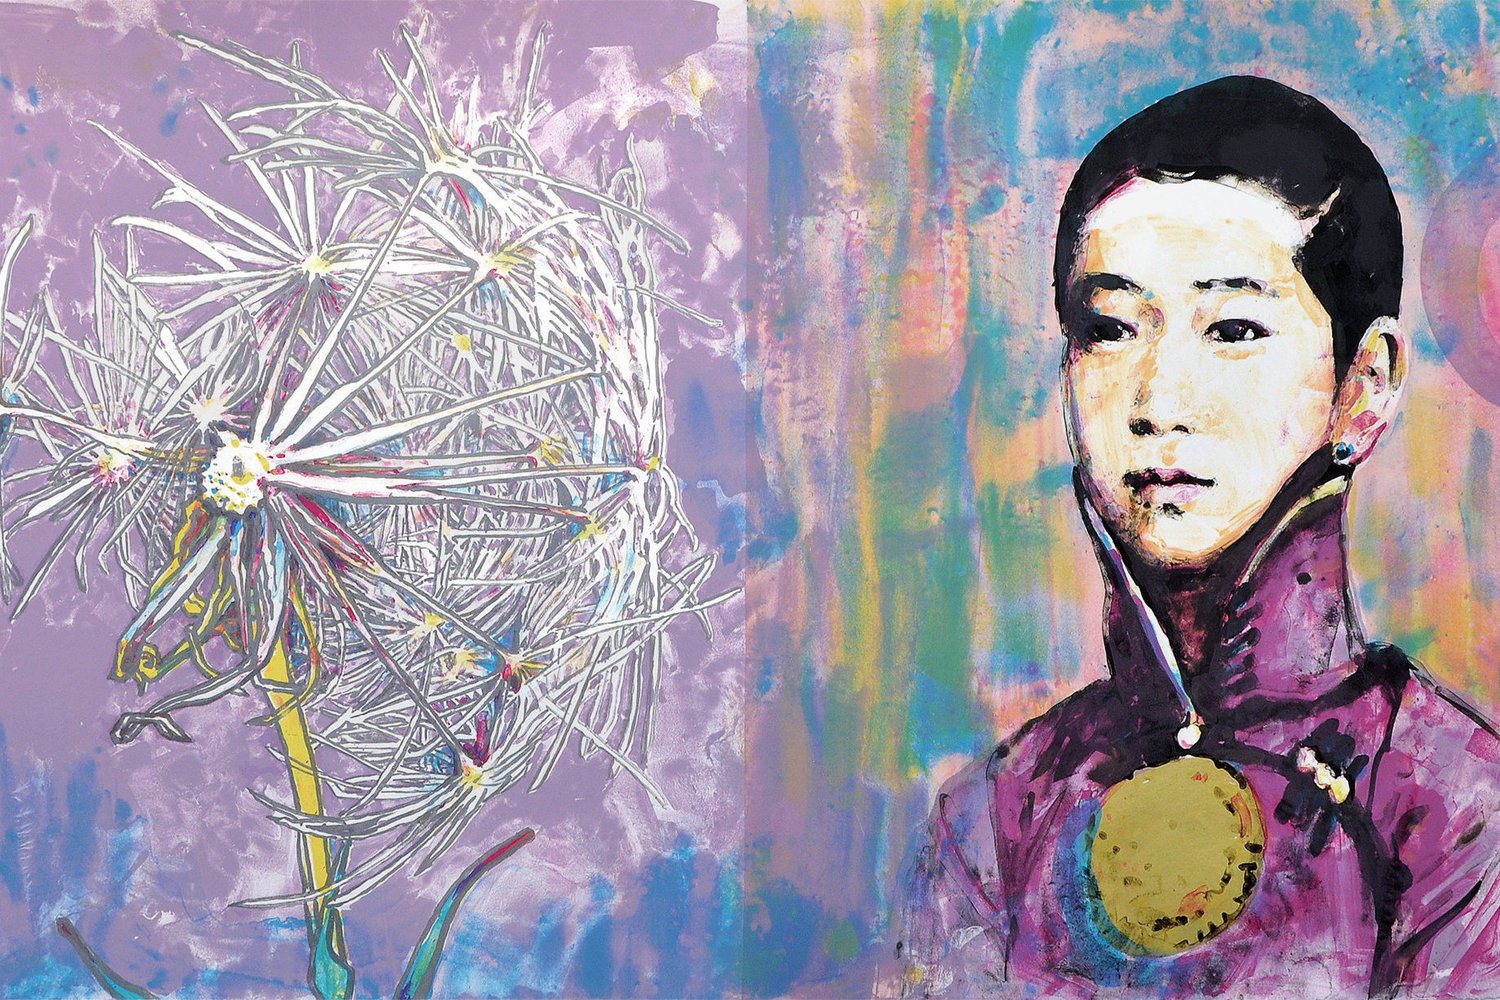 Hung Liu, Scattered Seed I, 2015. Color lithograph w/gold leaf, Patron Impression #4/4. Print dimensions: 22¼ x 44½ inches. $3,600 value, framed.